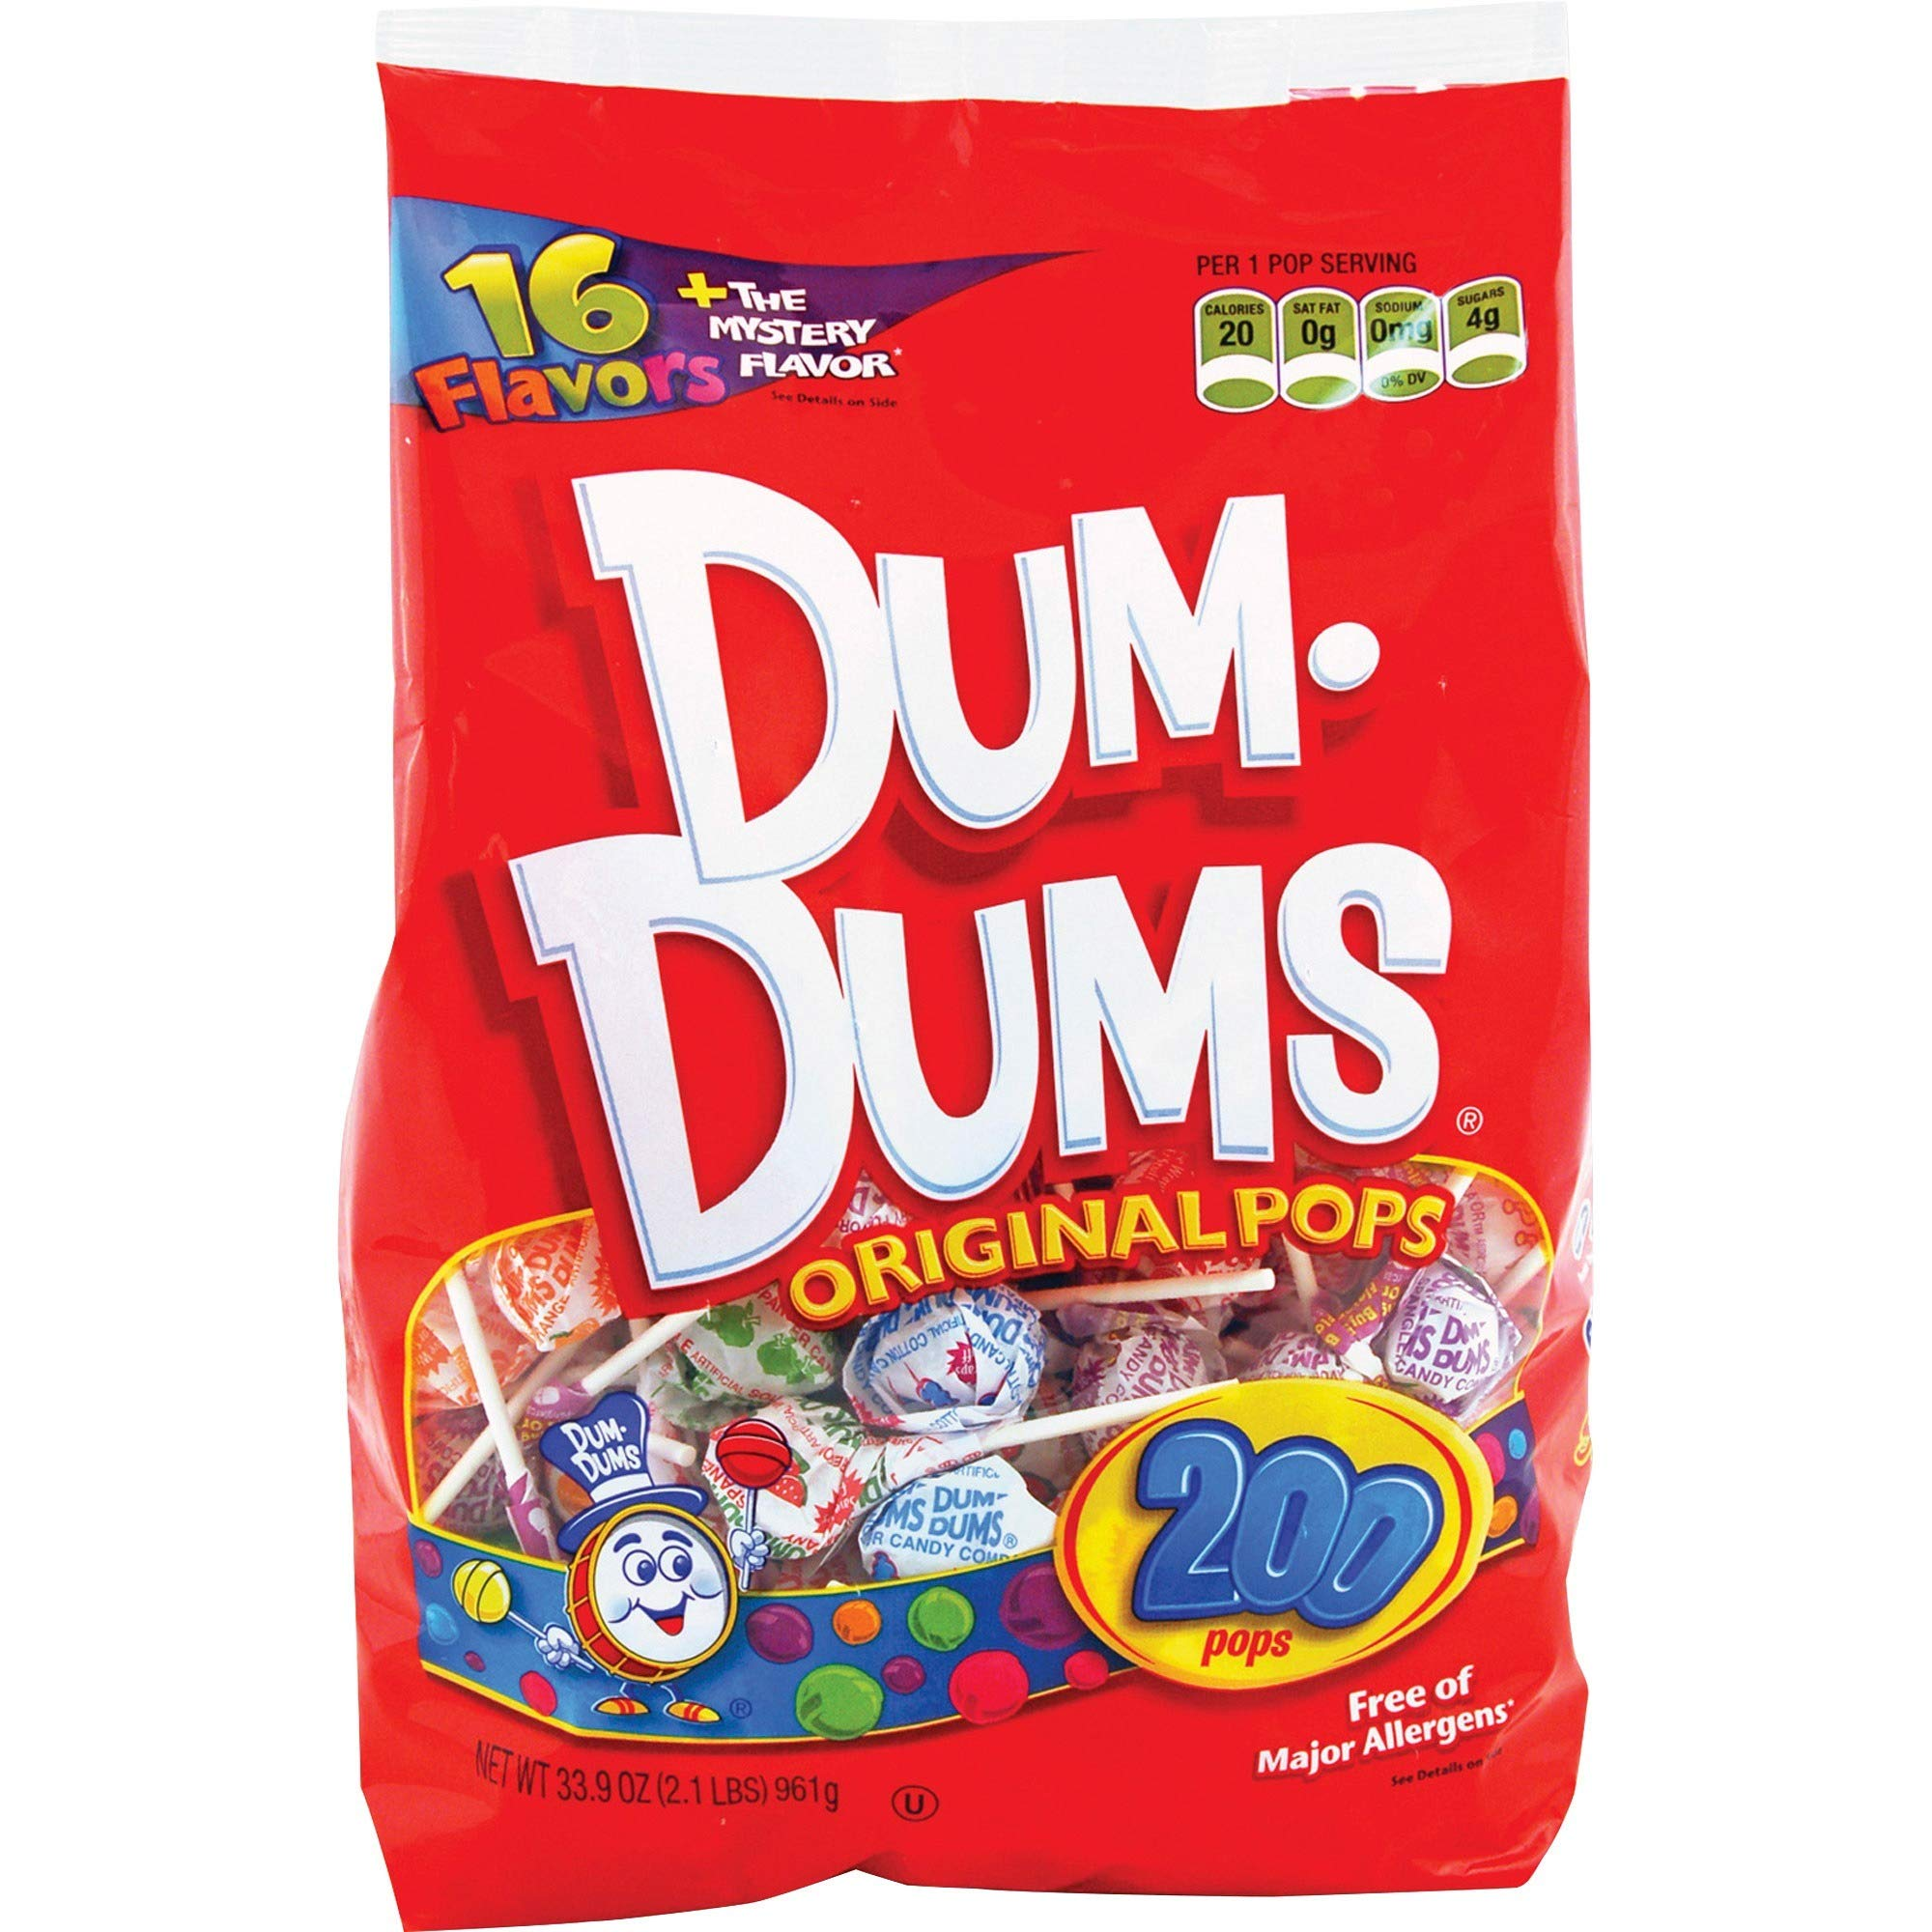 DUM DUMS Lollipops, Variety Flavor Mix, 200 Count Bag